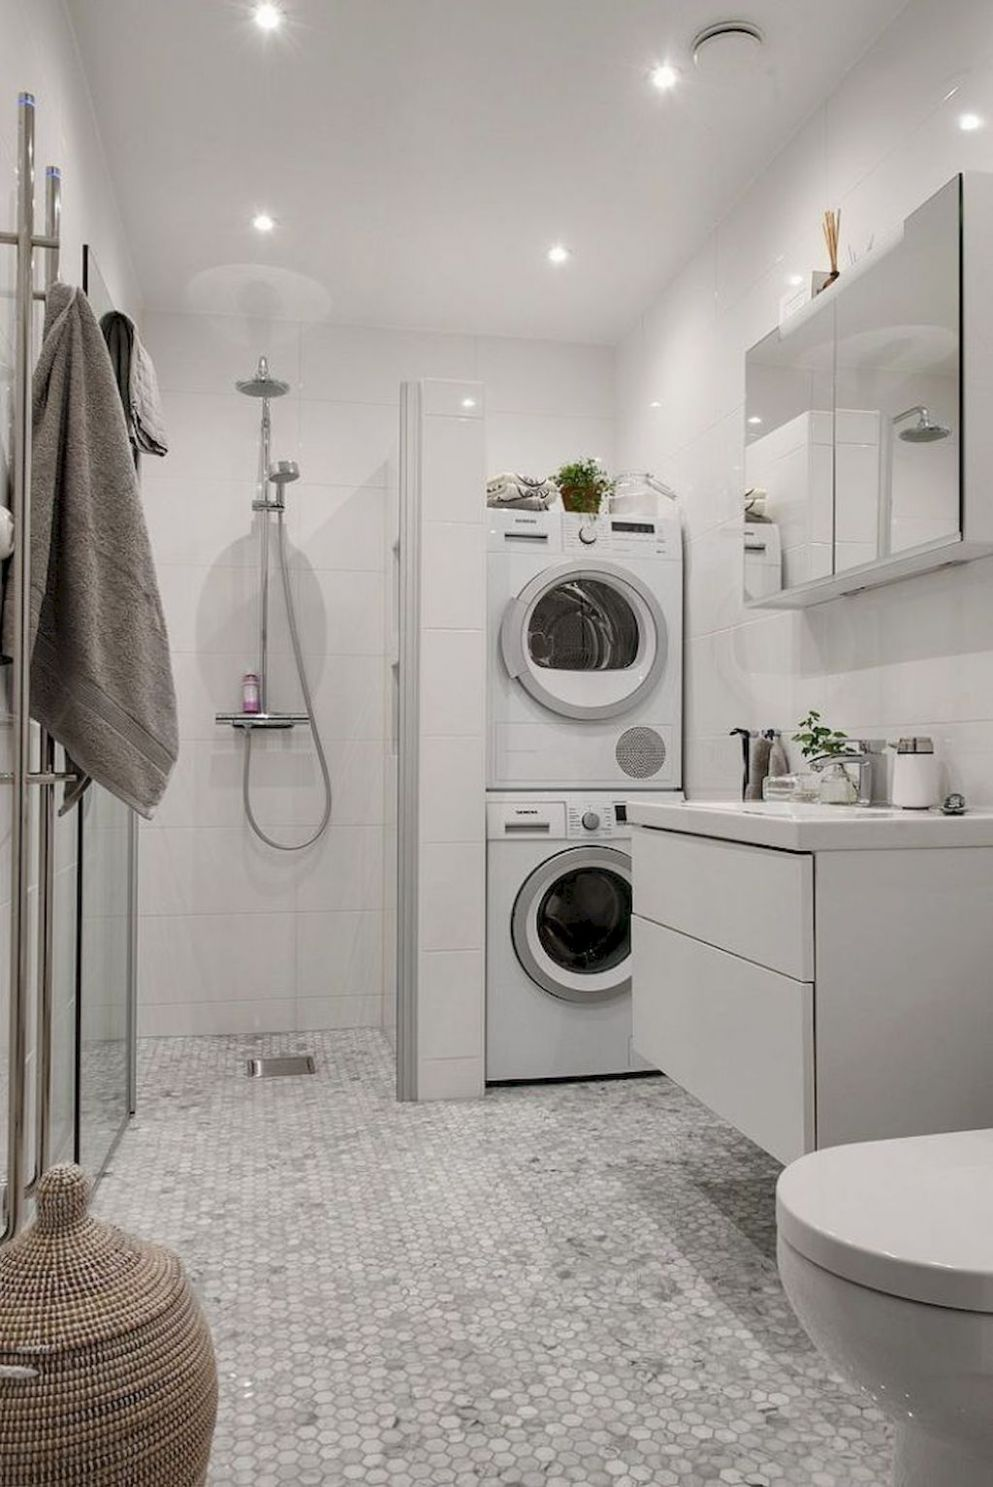 12 Functional Small Laundry Room Design Ideas in 12 | Laundry ..